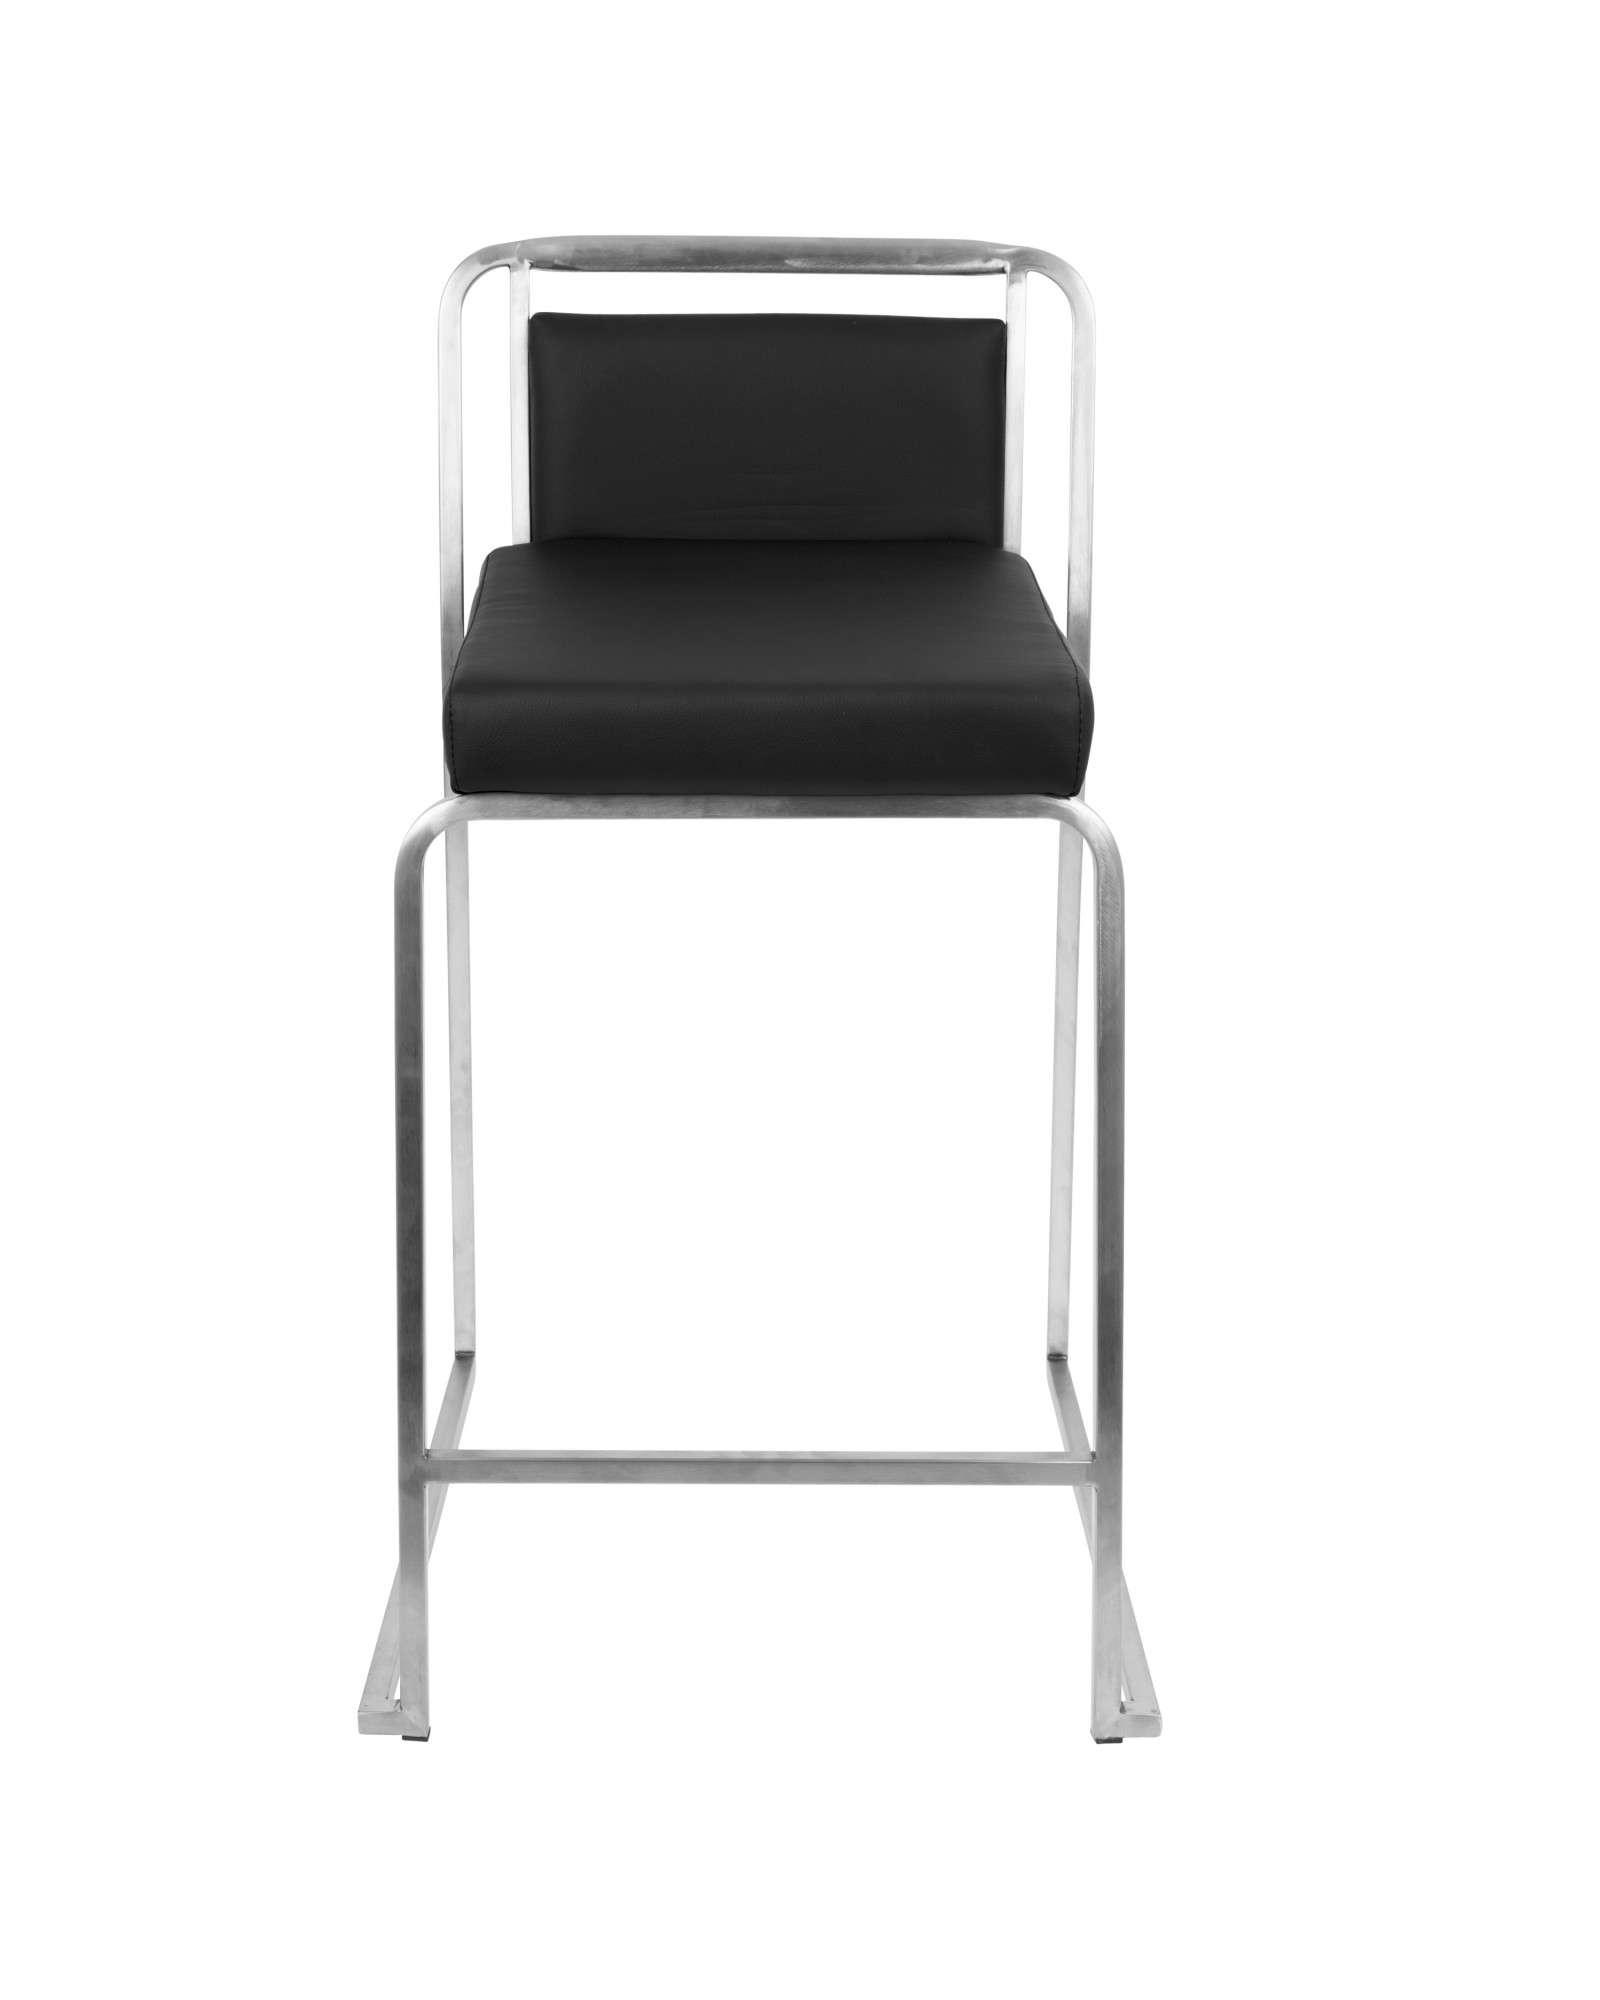 Cascade Contemporary Stackable Counter Stool in Black Faux Leather - Set of 2